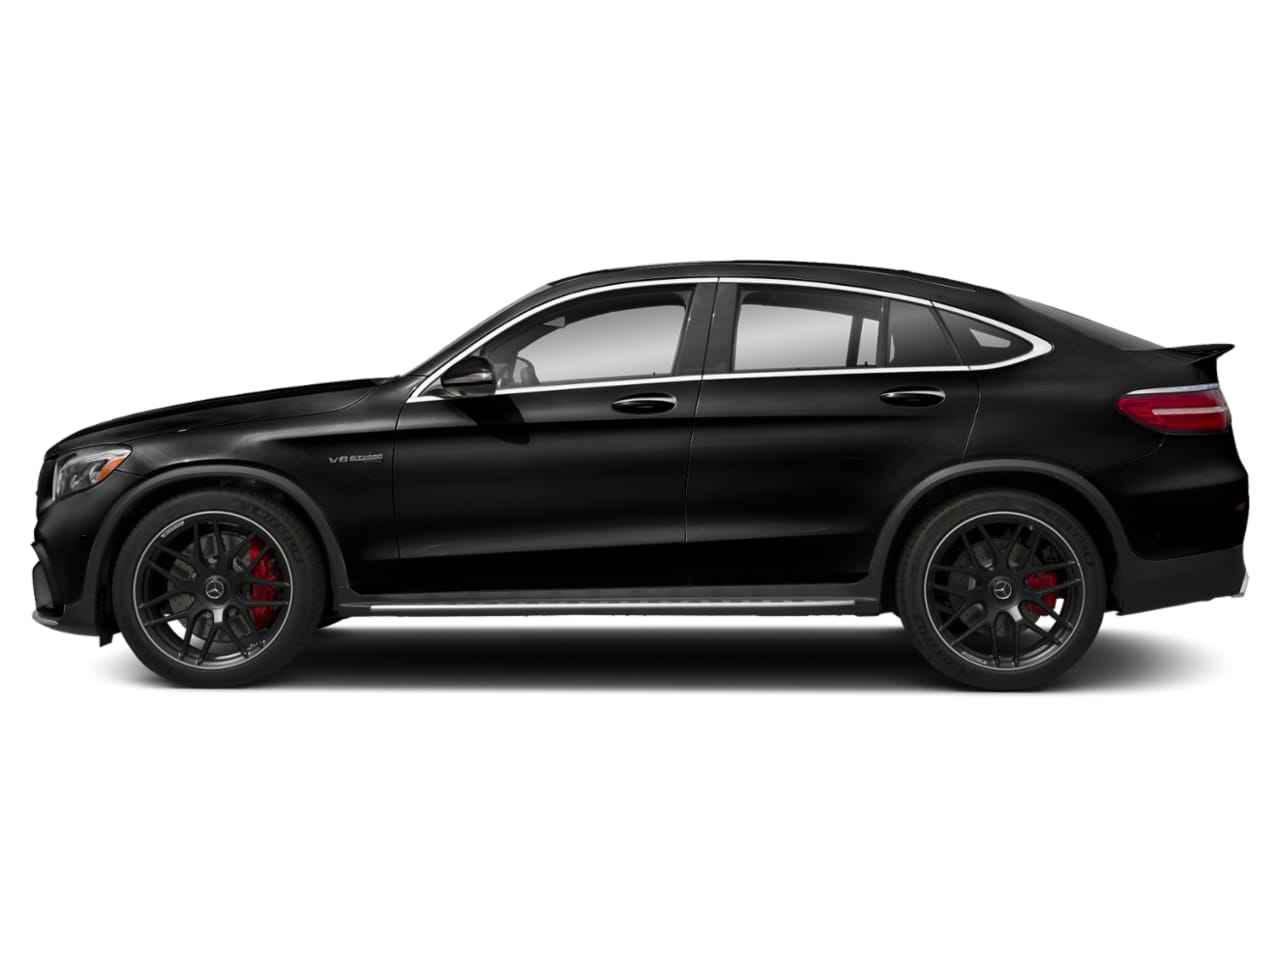 Mercedes-Benz GLC 63 AMG  2019 4.0 V8 TURBO GASOLINA 4MATIC+